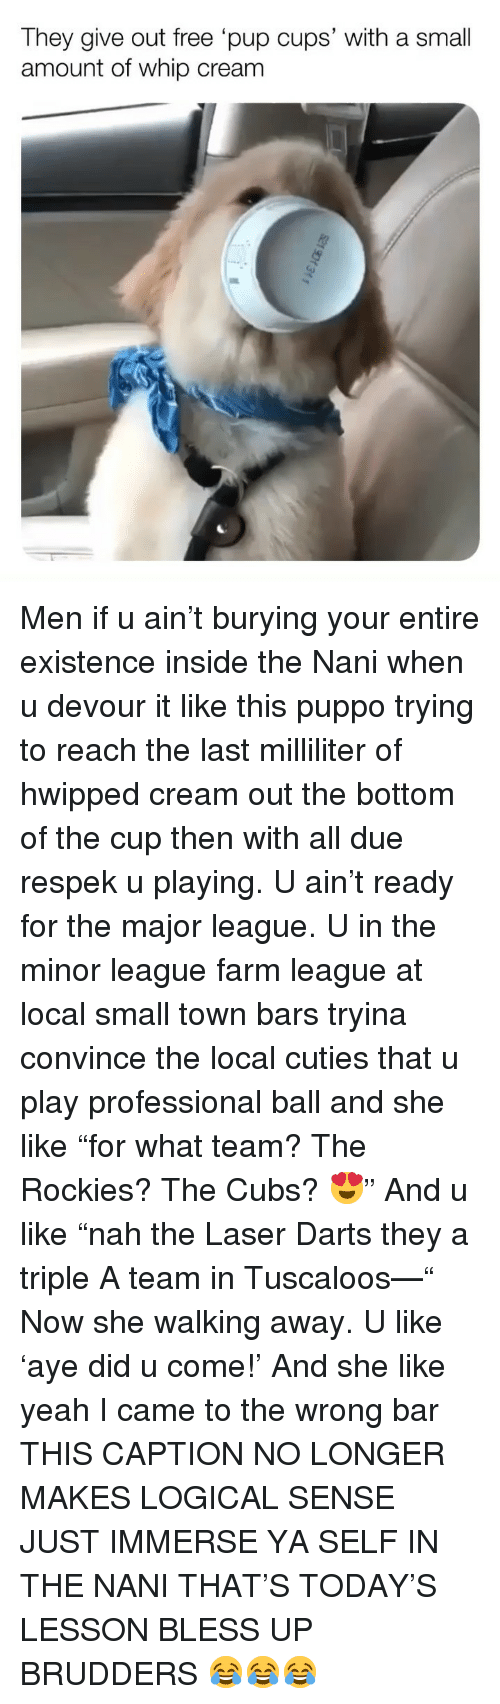 "devour: They give out free pup cups' with a small  amount of whip cream Men if u ain't burying your entire existence inside the Nani when u devour it like this puppo trying to reach the last milliliter of hwipped cream out the bottom of the cup then with all due respek u playing. U ain't ready for the major league. U in the minor league farm league at local small town bars tryina convince the local cuties that u play professional ball and she like ""for what team? The Rockies? The Cubs? 😍"" And u like ""nah the Laser Darts they a triple A team in Tuscaloos—"" Now she walking away. U like 'aye did u come!' And she like yeah I came to the wrong bar THIS CAPTION NO LONGER MAKES LOGICAL SENSE JUST IMMERSE YA SELF IN THE NANI THAT'S TODAY'S LESSON BLESS UP BRUDDERS 😂😂😂"